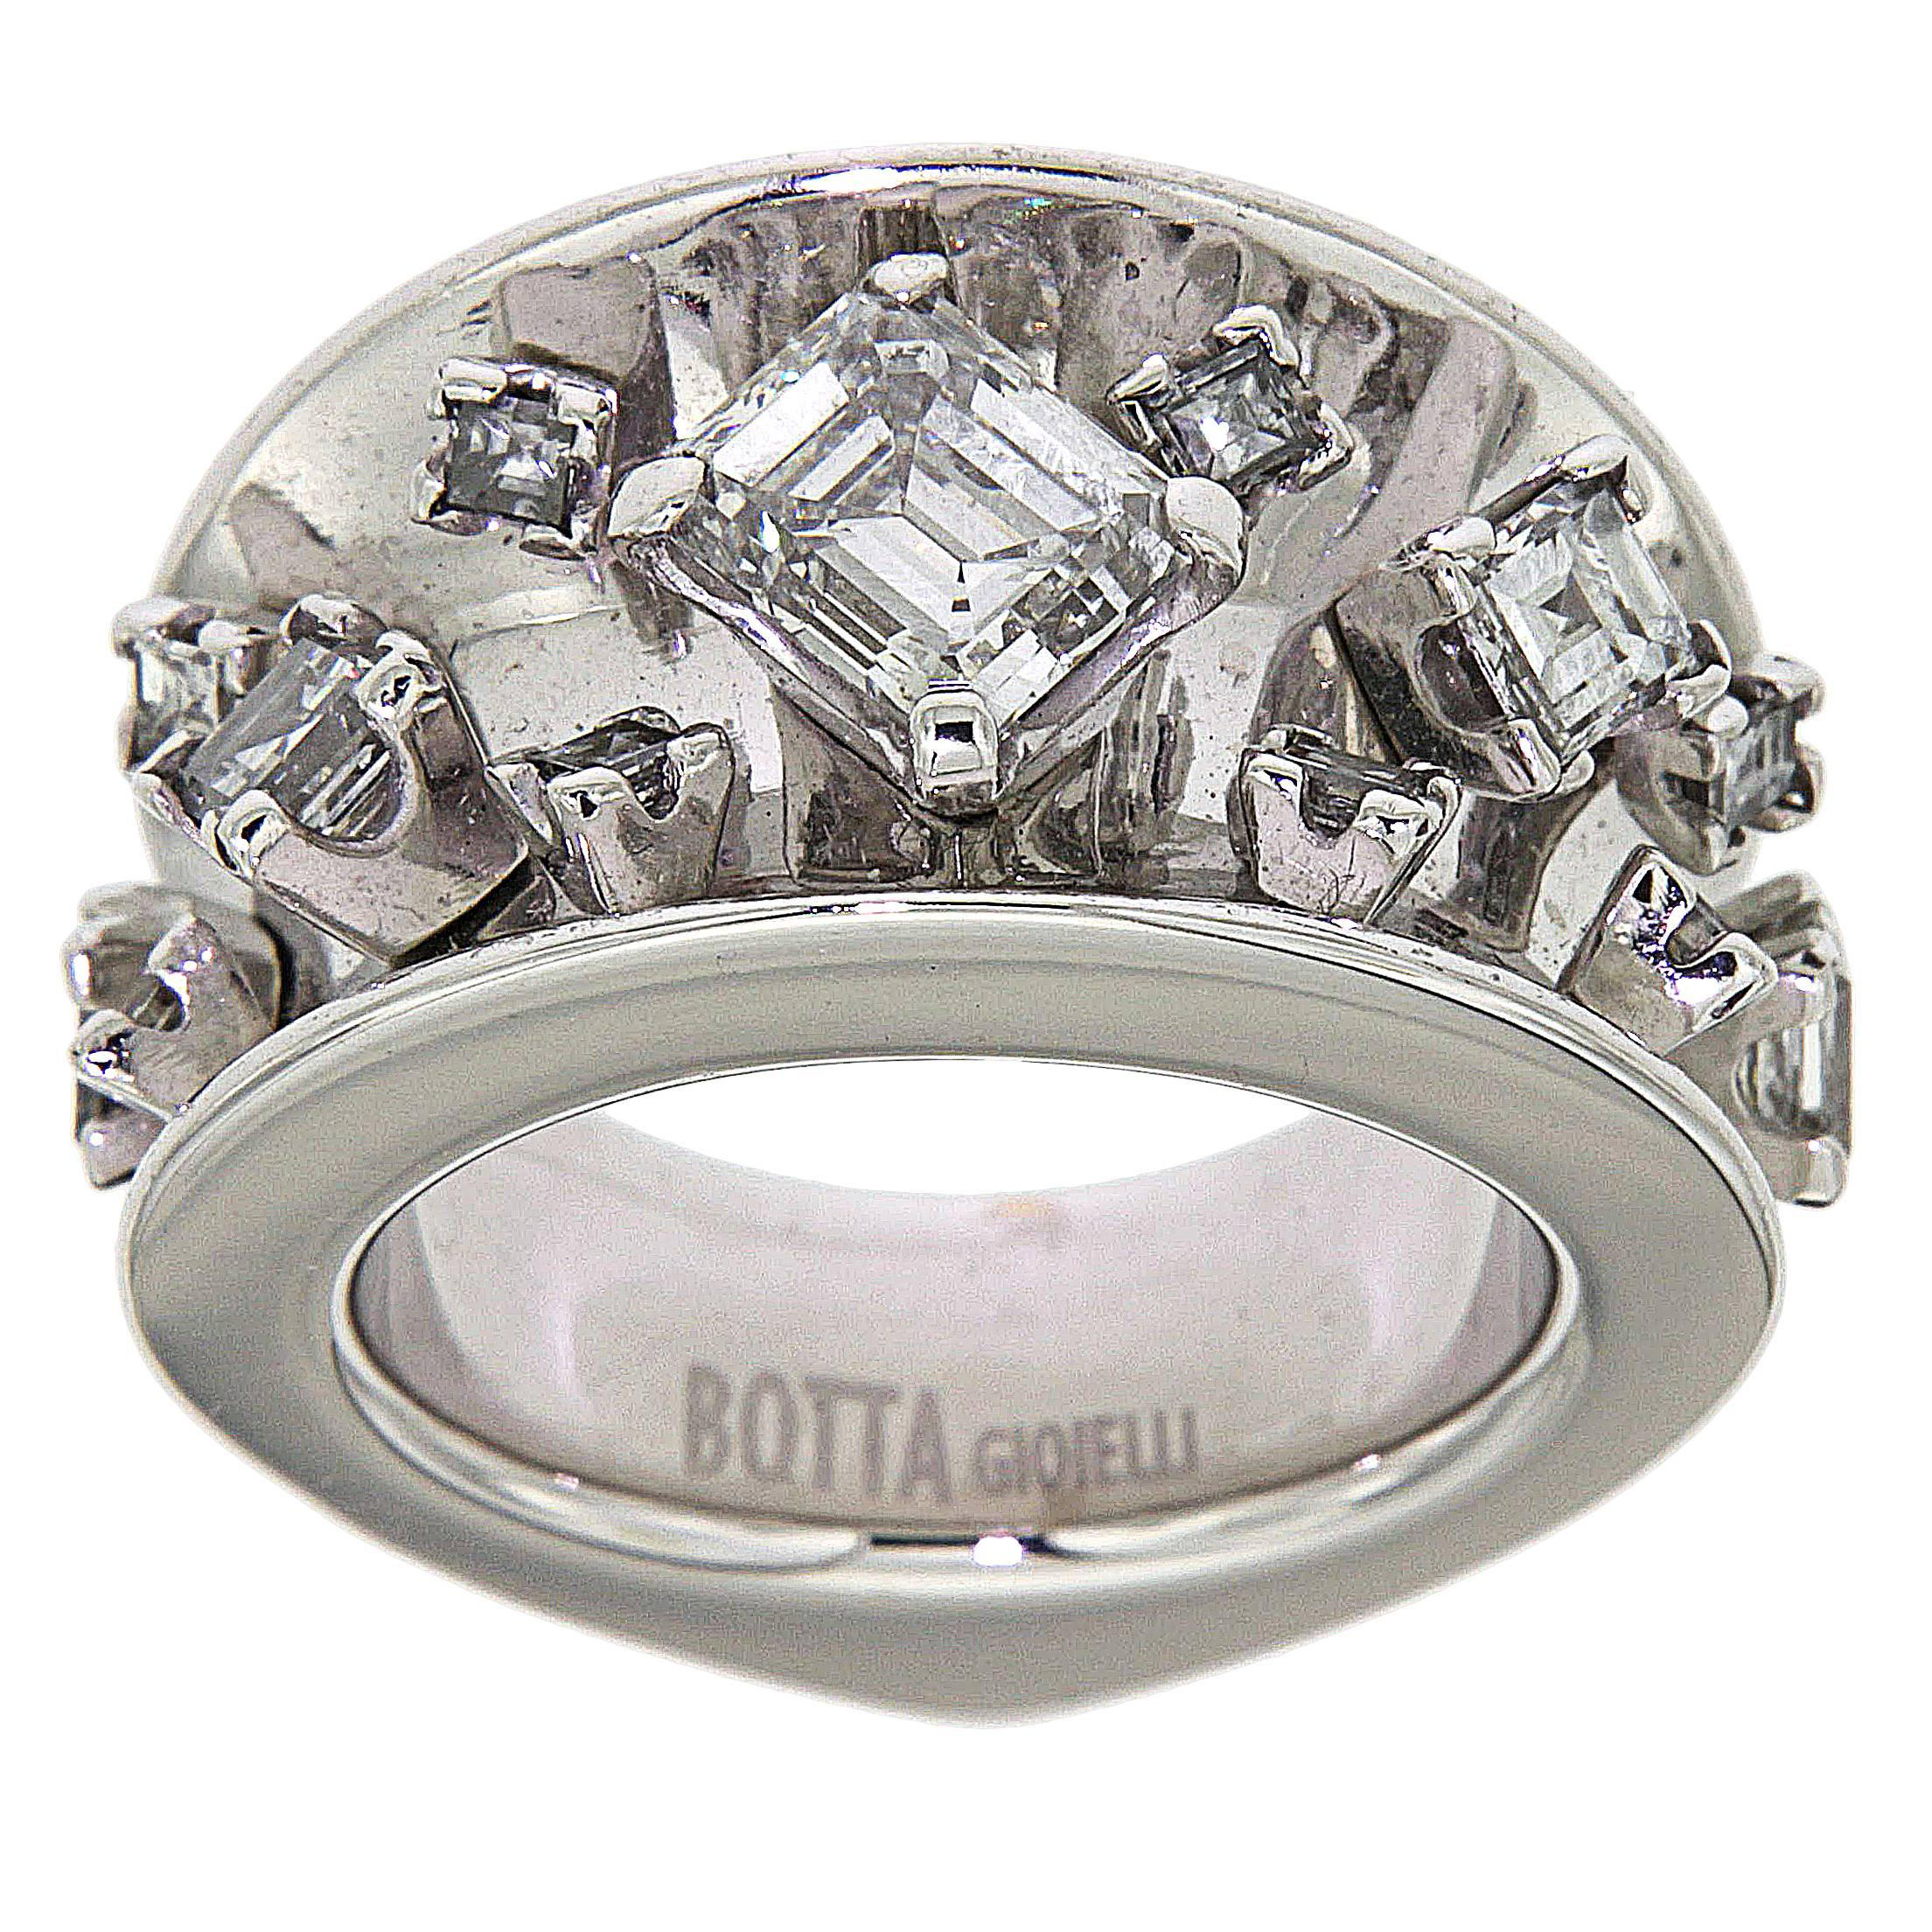 GIA Certified 1.36 Carat Diamonds 18K White Gold Cocktail Ring Made in Italy